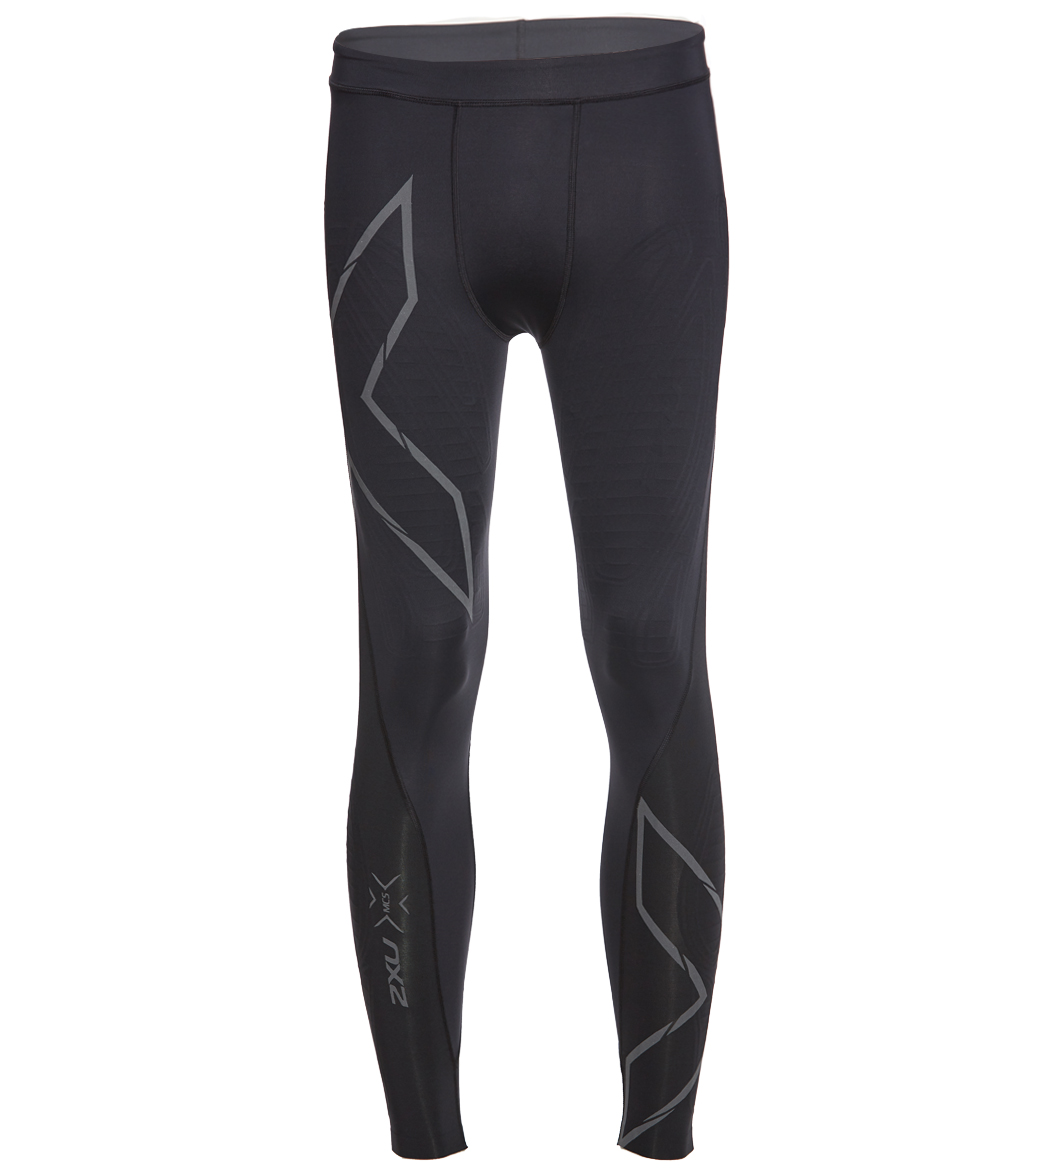 fd45706625 2XU Men's MCS Run Compression Tights at SwimOutlet.com - Free Shipping